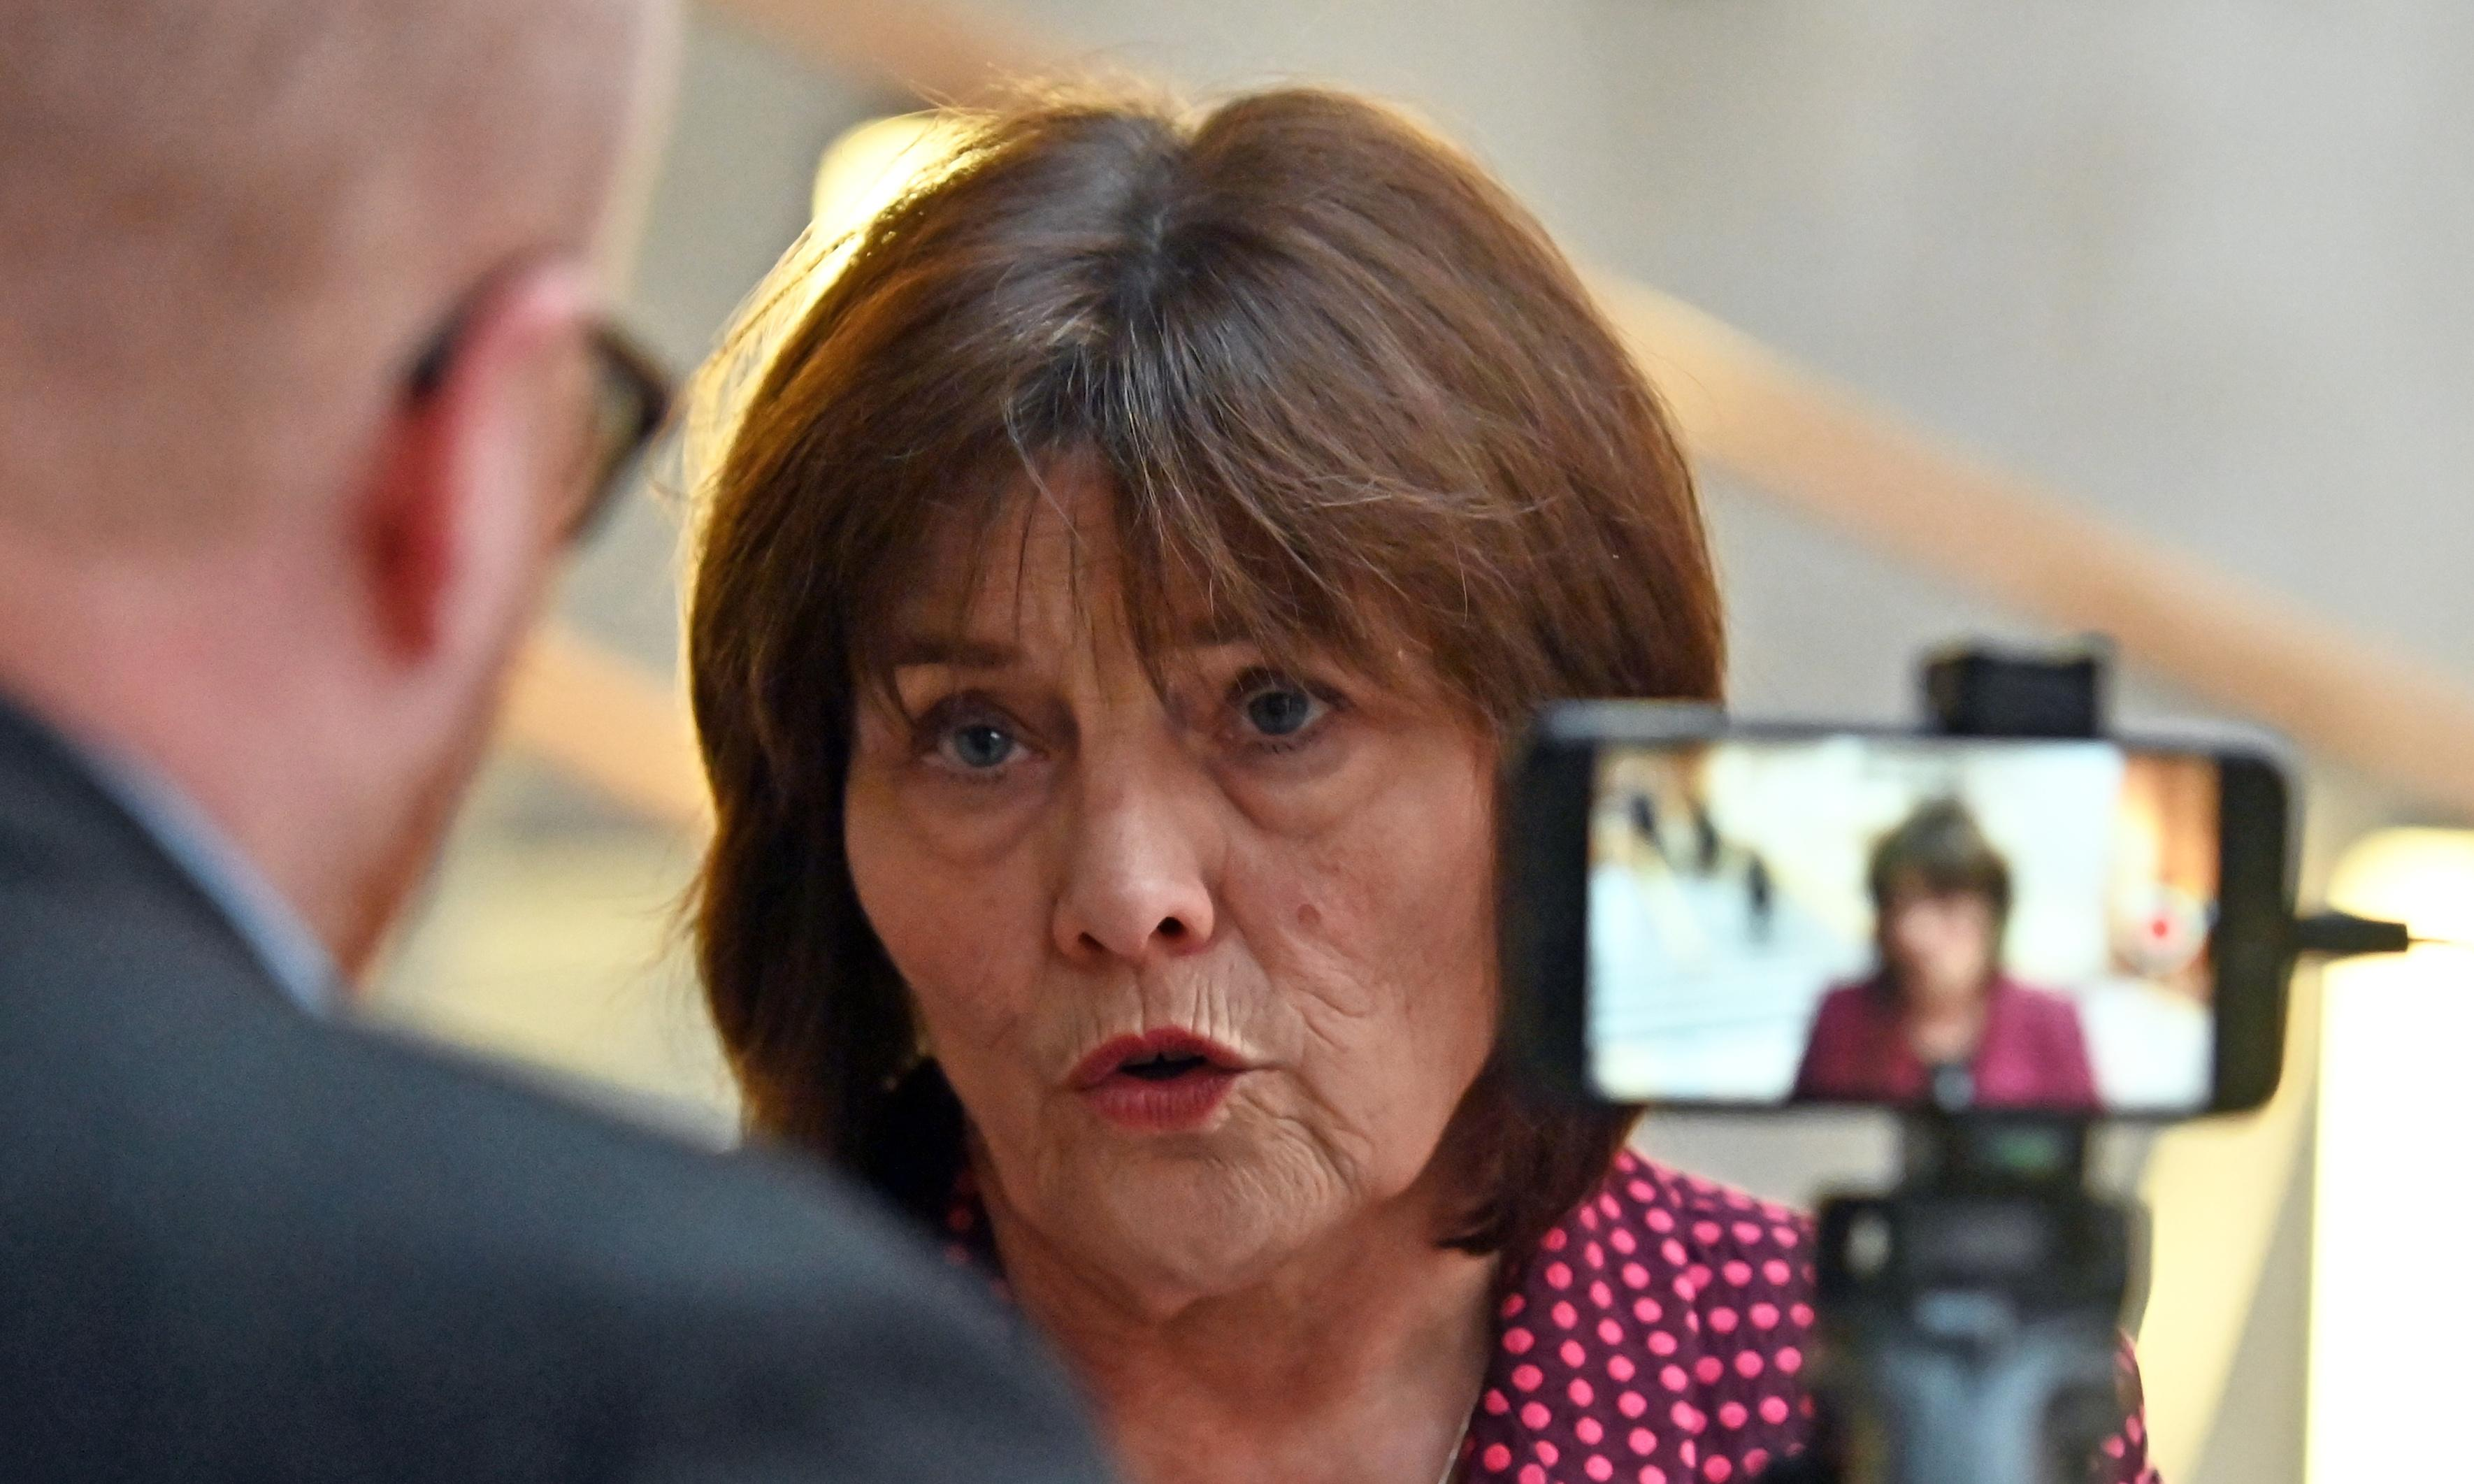 Glasgow health board avoids special measures after deaths of two children